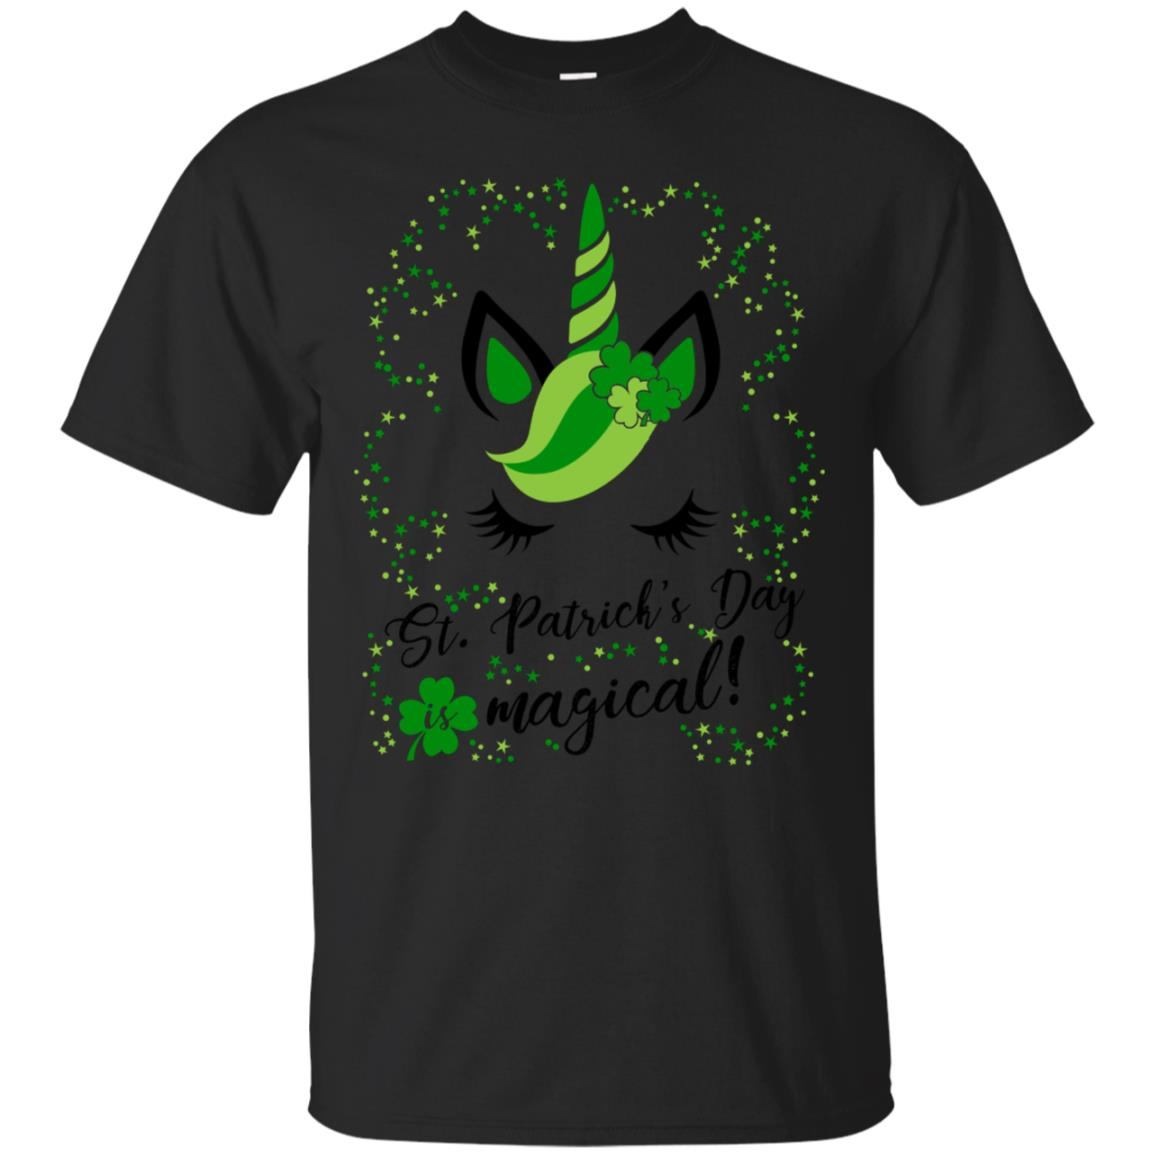 St Patricks day is magical! Cute & Funny Unicorn T Shirt 99promocode